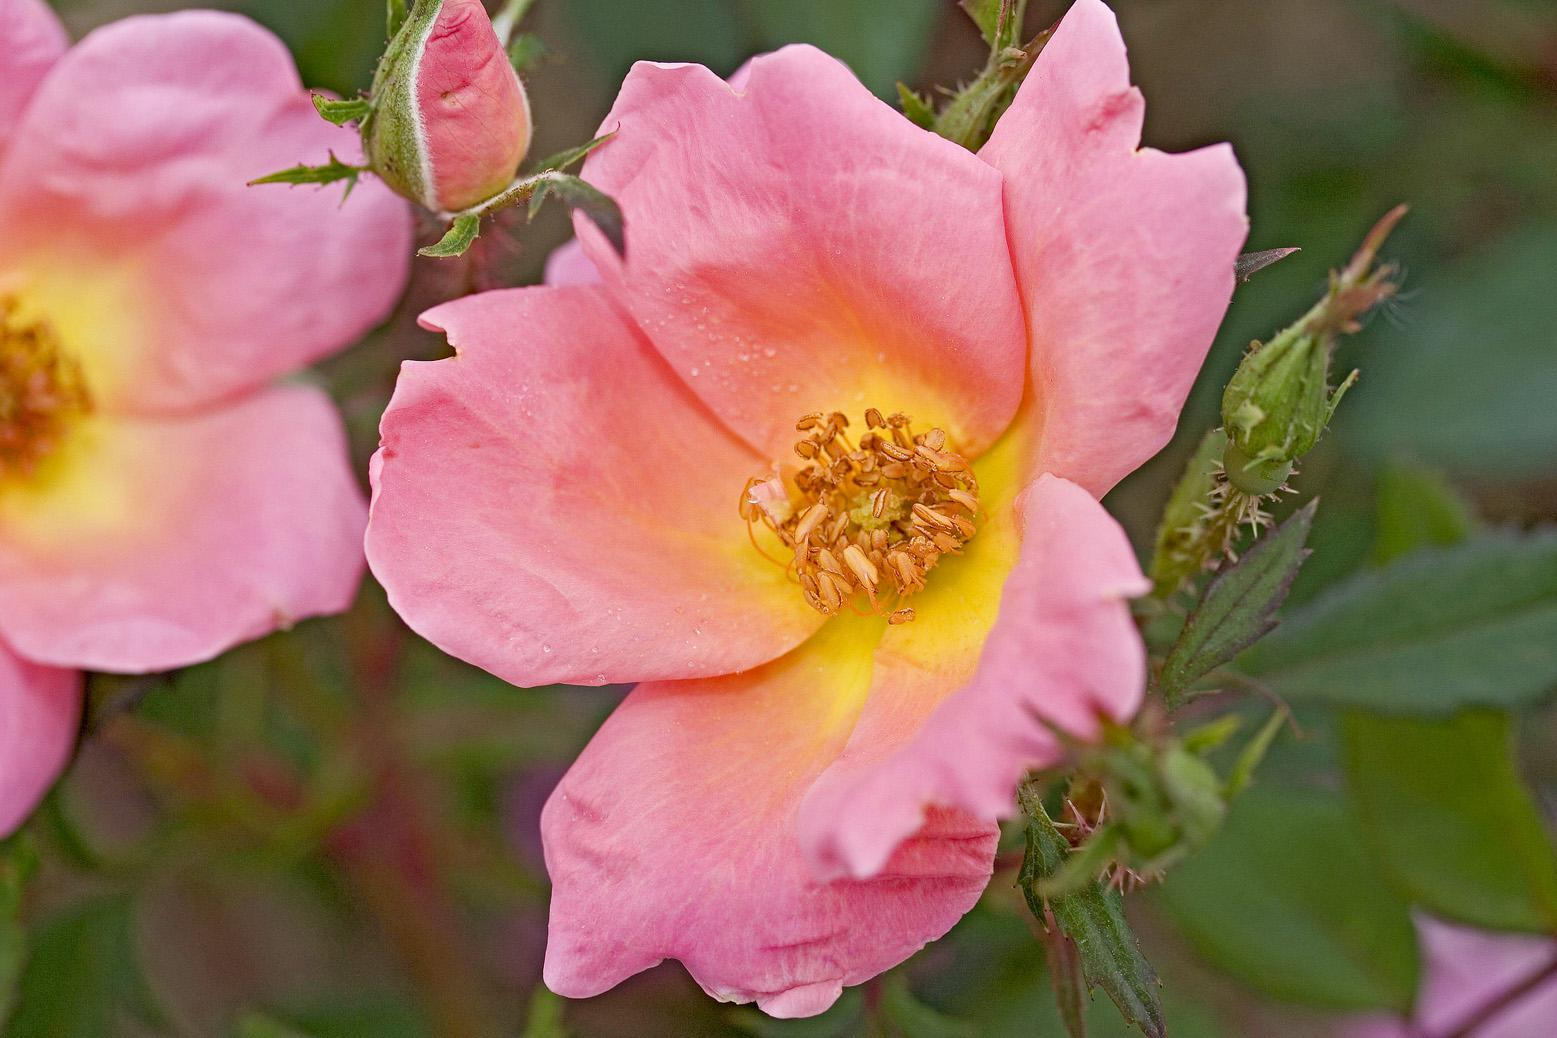 Rainbow Knock Out is a compact landscape shrub rose that produces abundant single-form flowers throughout the growing season. The delicate, five-petaled flowers are a deep coral-pink color with a yellow center finishing nicely to light coral.